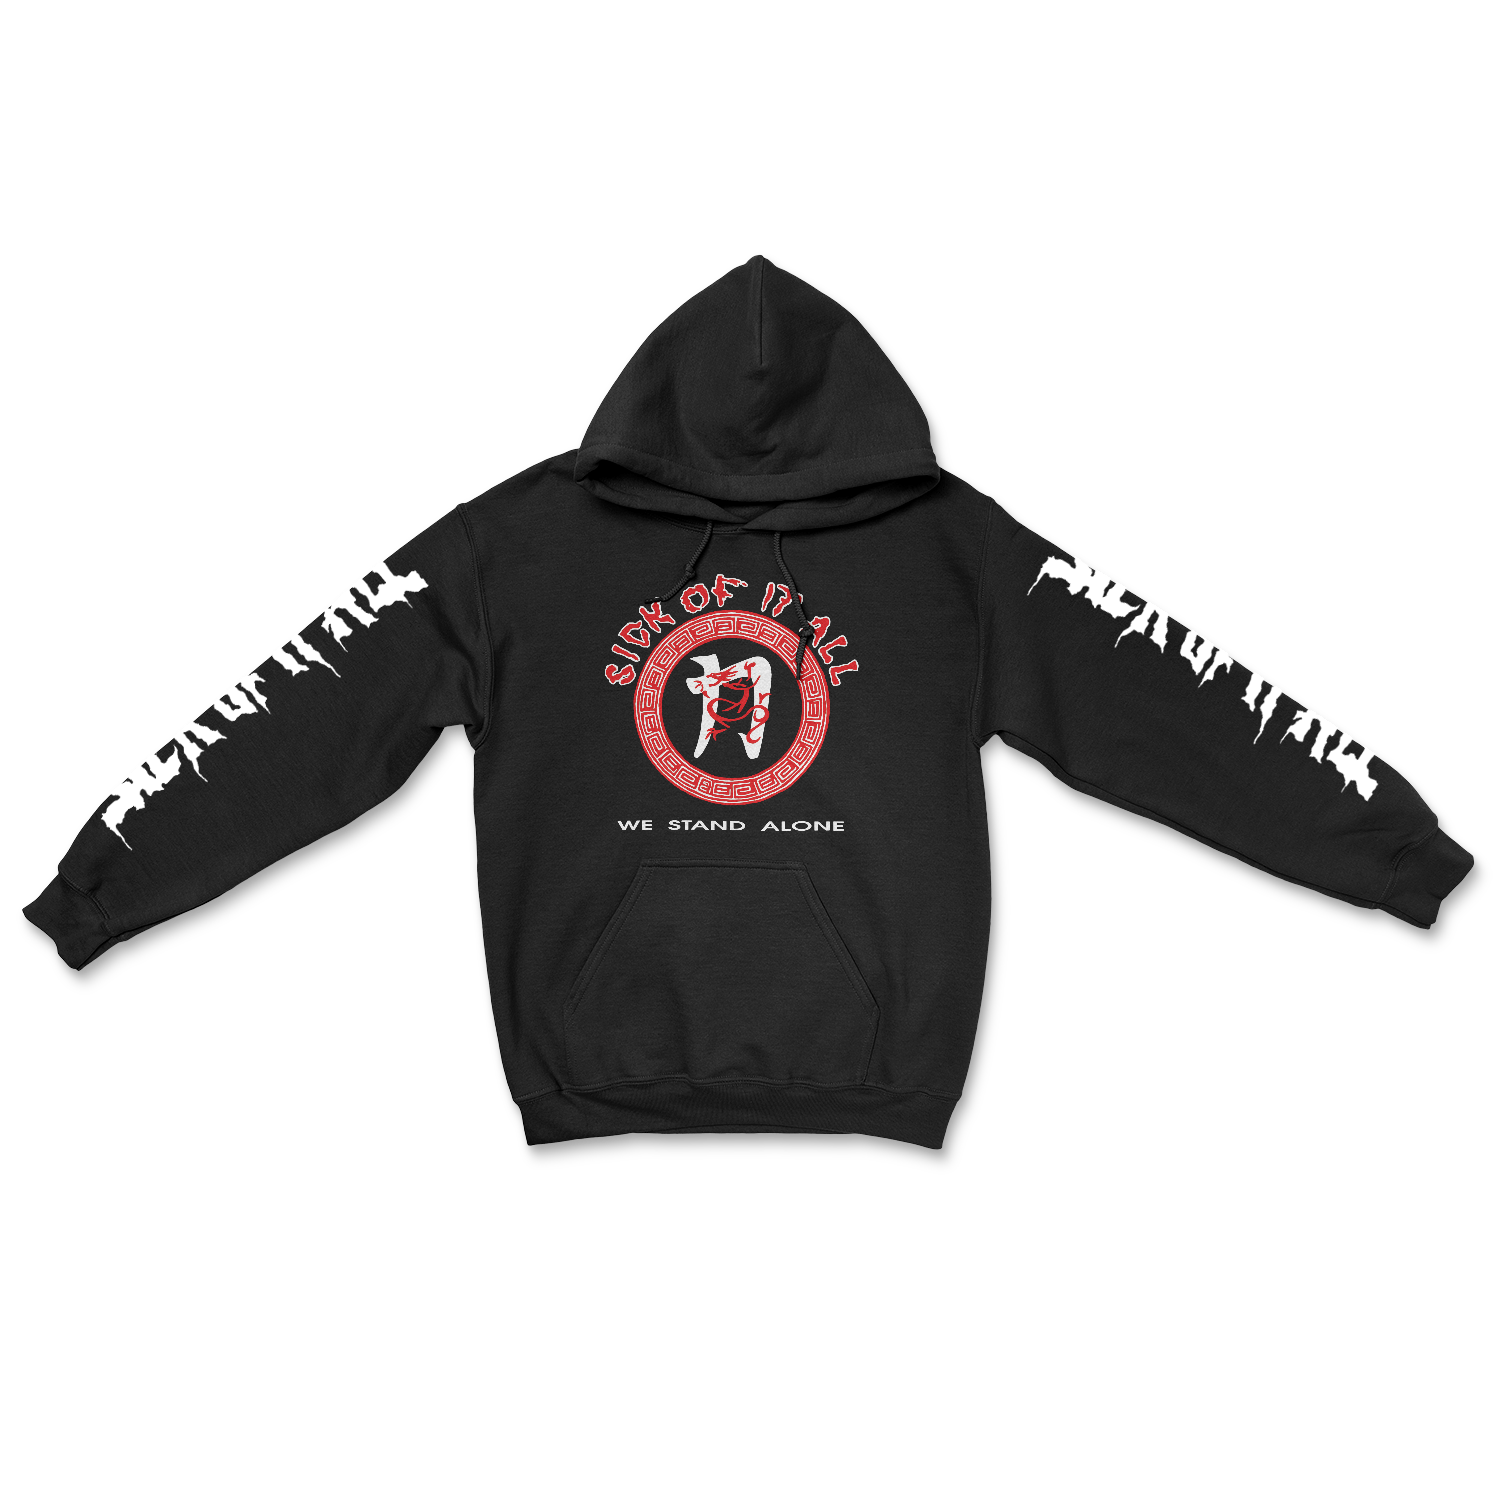 SICK OF IT ALL 'We Stand Alone' Hoodie Sweatshirt